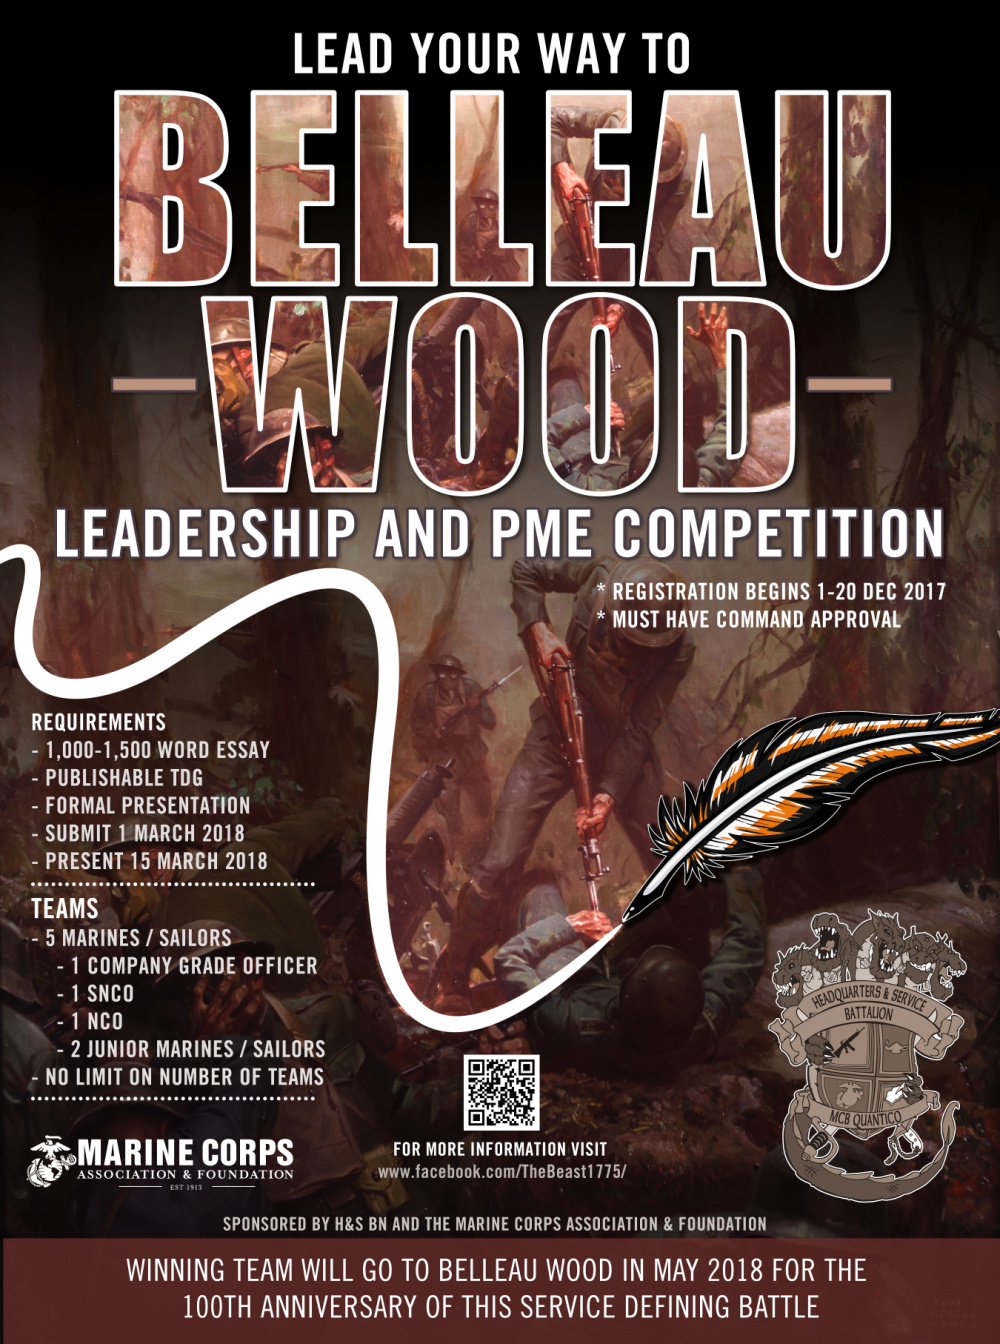 Belleau Wood Leadership and PME Competition